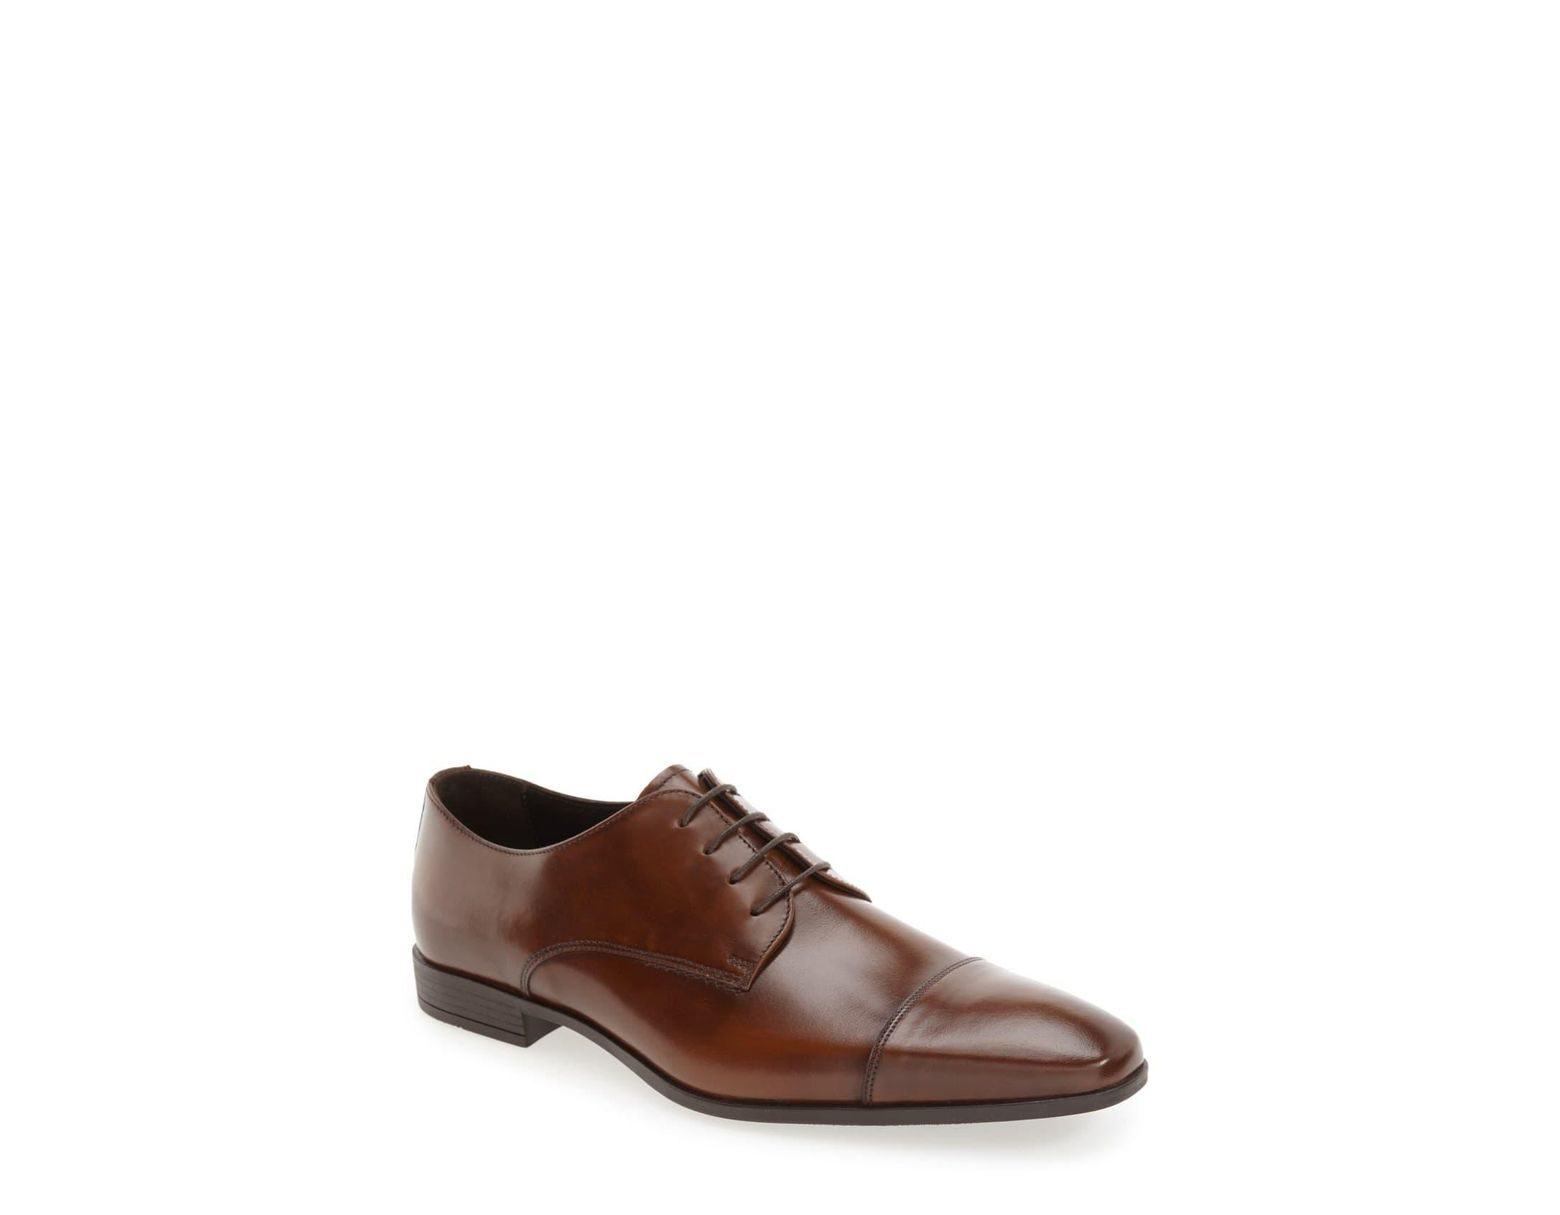 57851bb08e95 The Rail 'stark' Cap Toe Derby in Brown for Men - Save 33% - Lyst